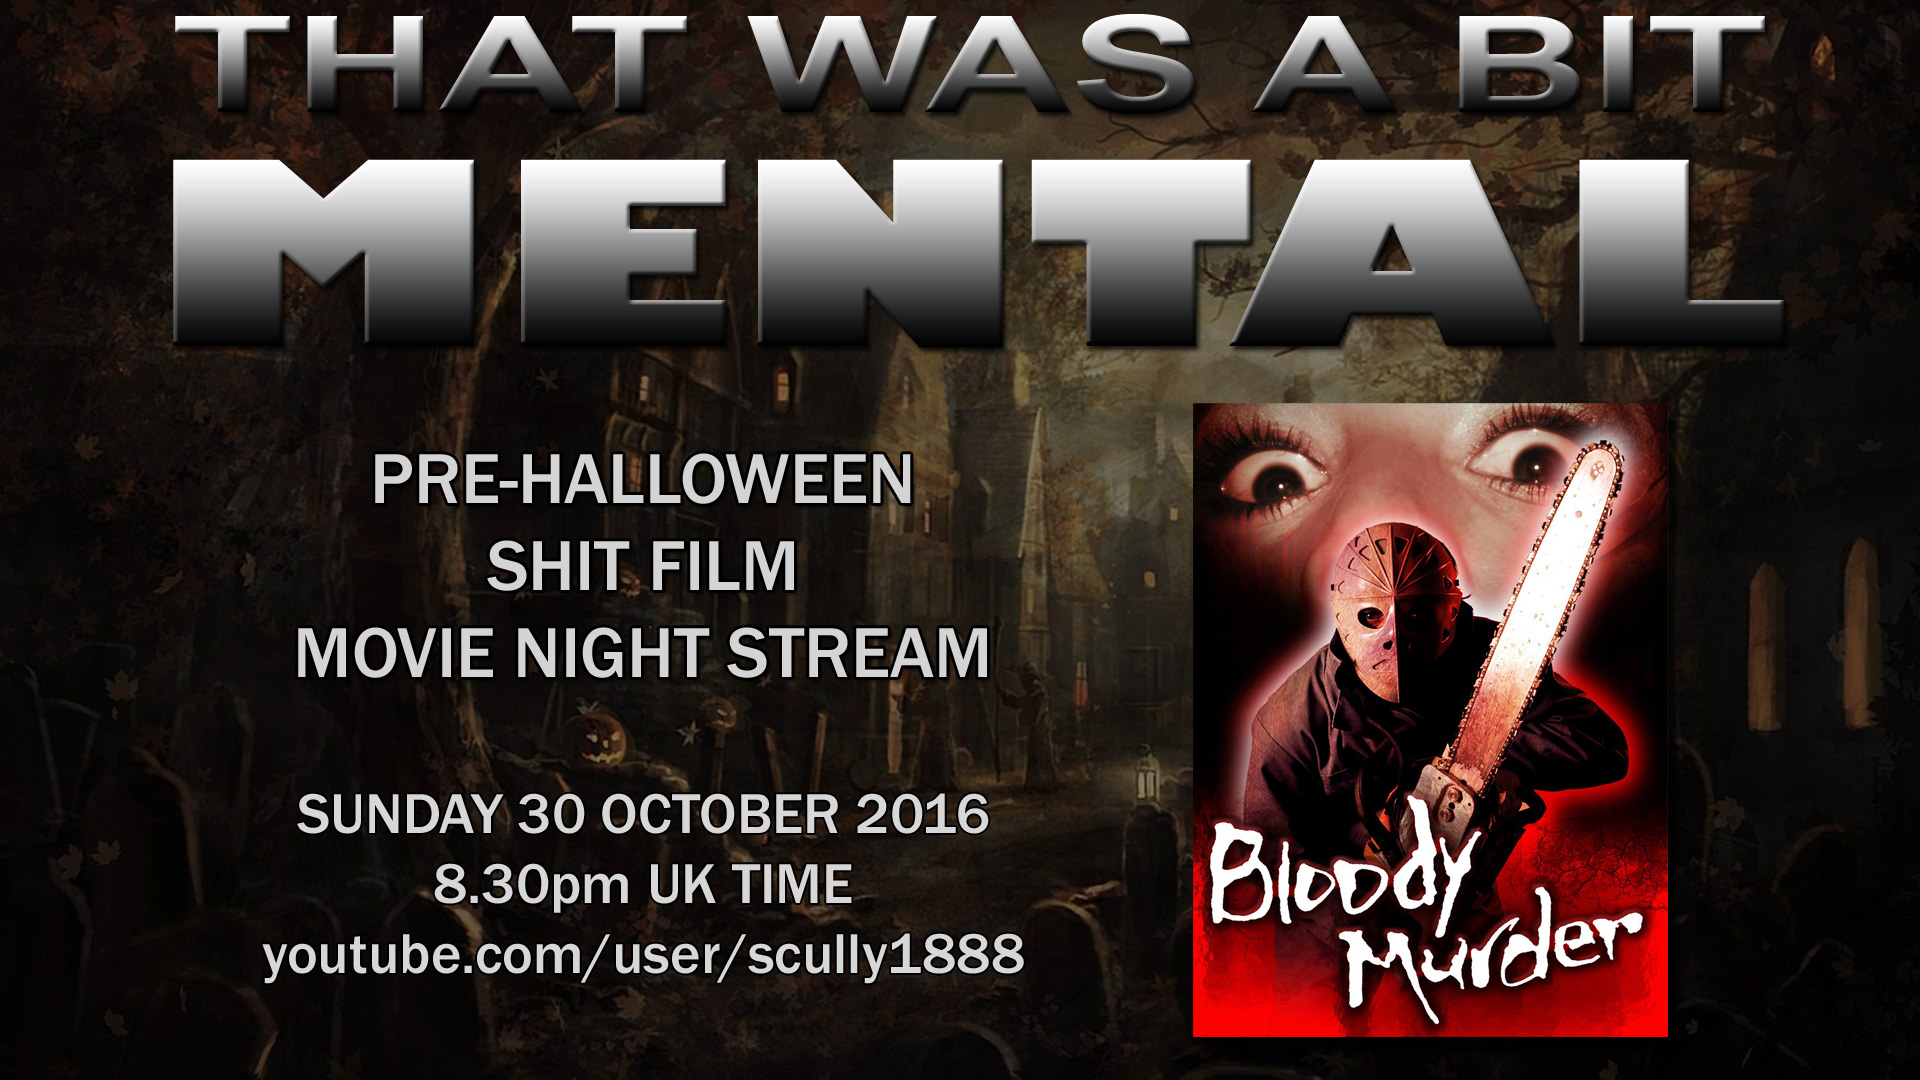 TWABM movie night 1 – Bloody Murder